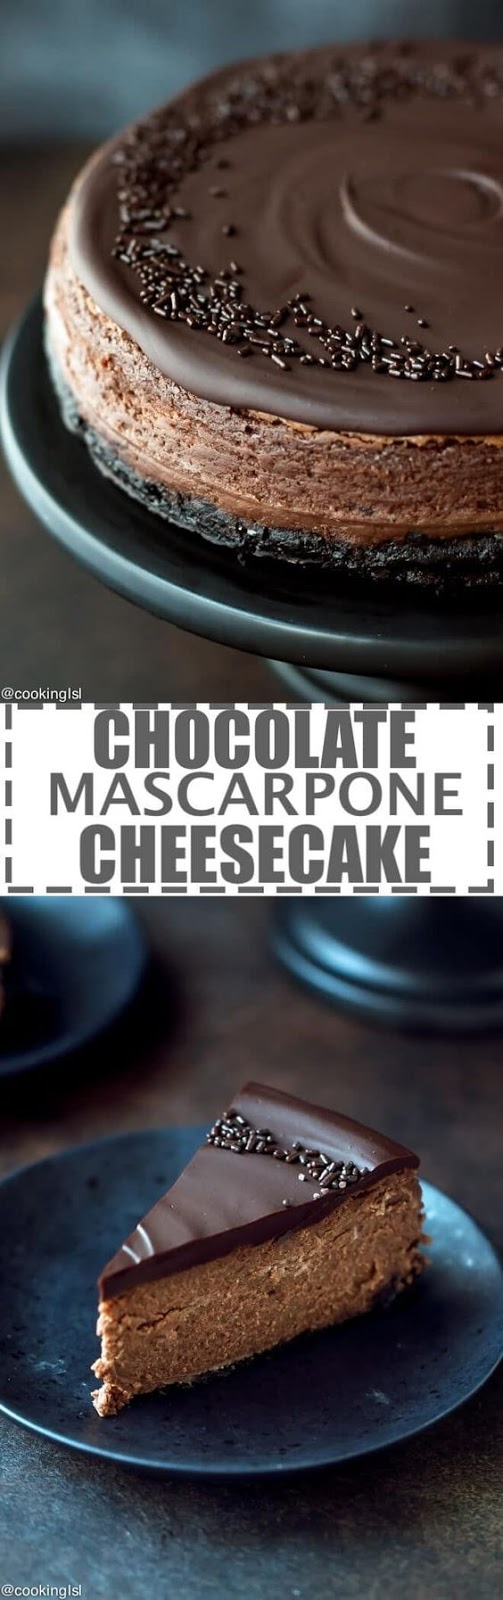 Chocolate Mascarpone Cheesecake Recipe